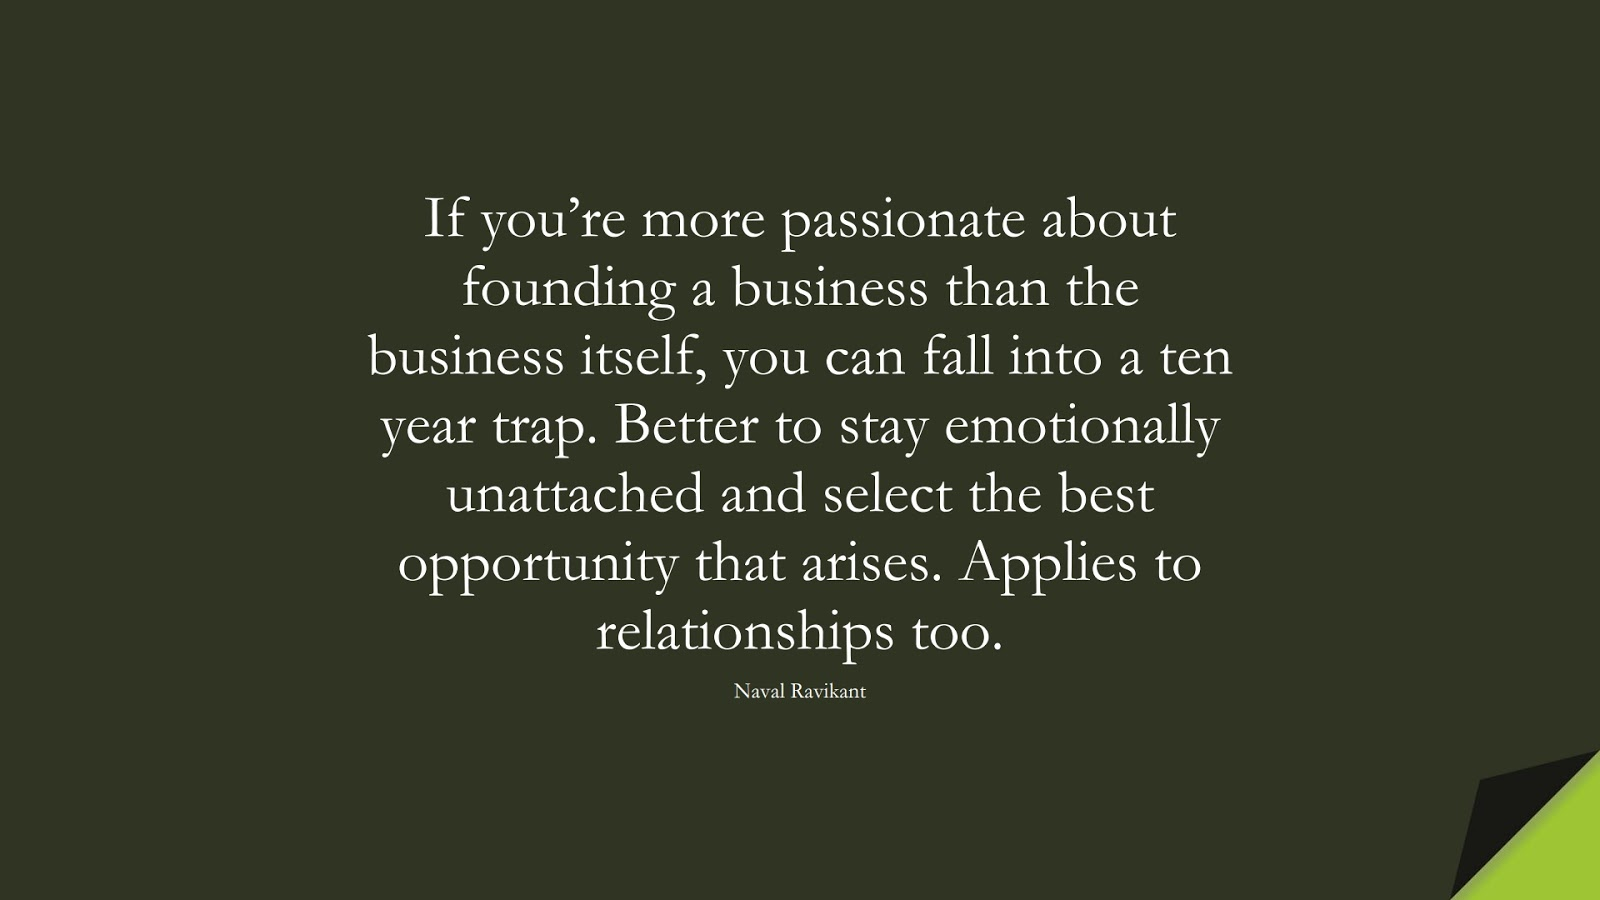 If you're more passionate about founding a business than the business itself, you can fall into a ten year trap. Better to stay emotionally unattached and select the best opportunity that arises. Applies to relationships too. (Naval Ravikant);  #StoicQuotes